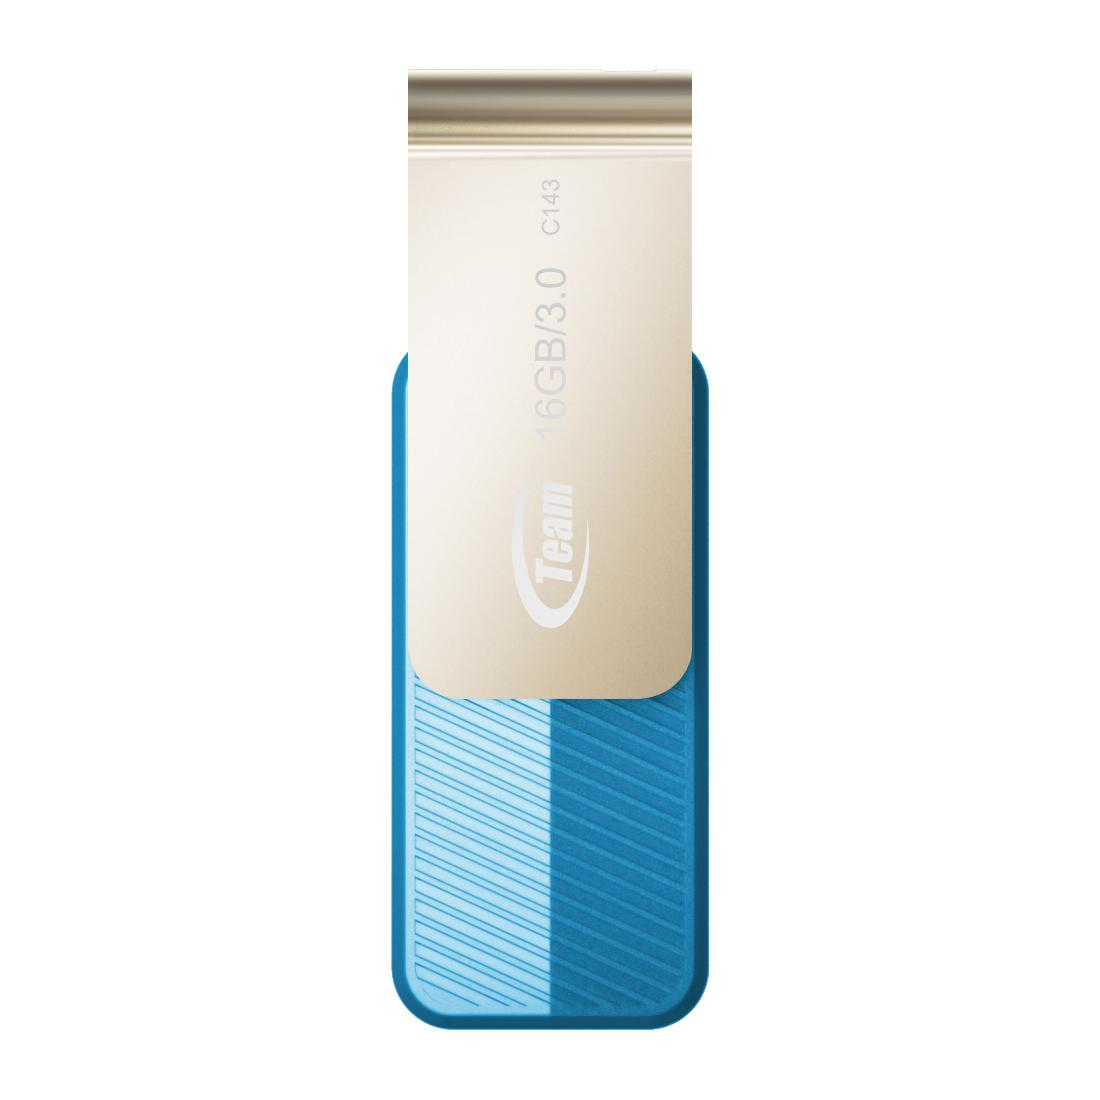 USB памет Team Group C143 16GB USB 3.0, Син